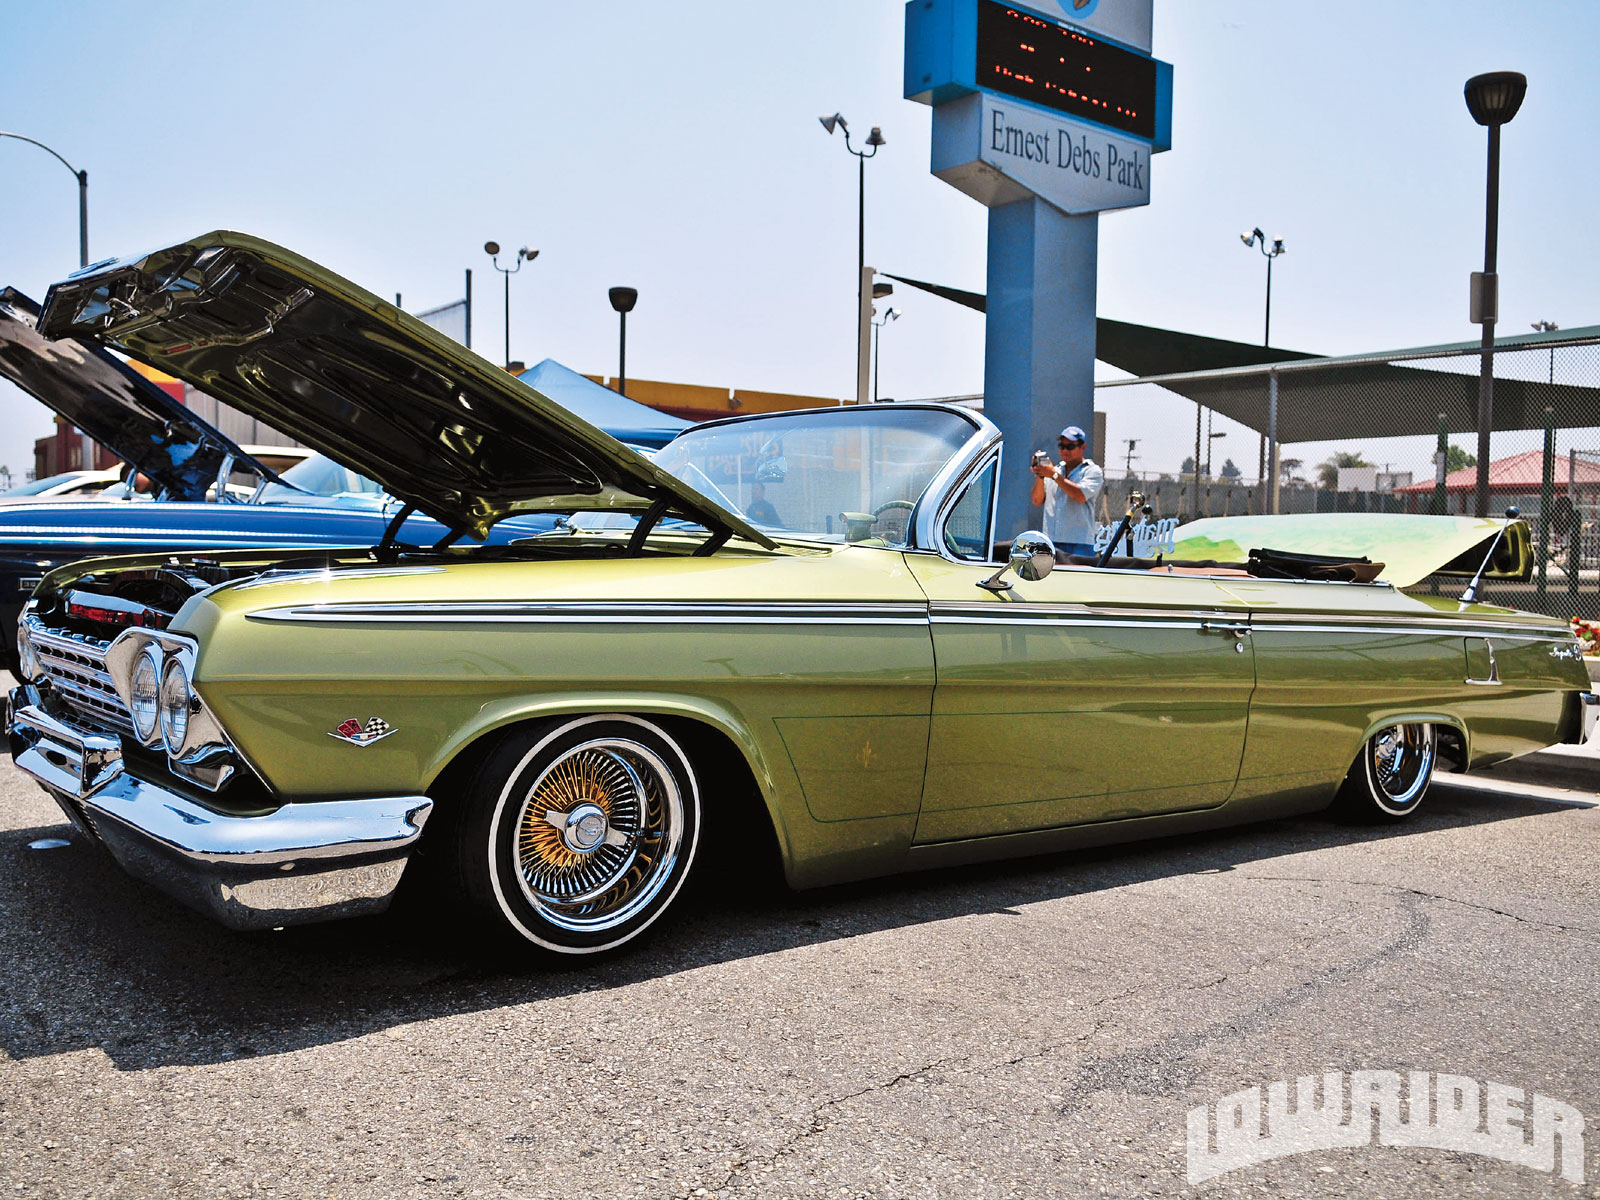 Best Of Friends And Kings Of Kings Bell Car Show - 2nd ...